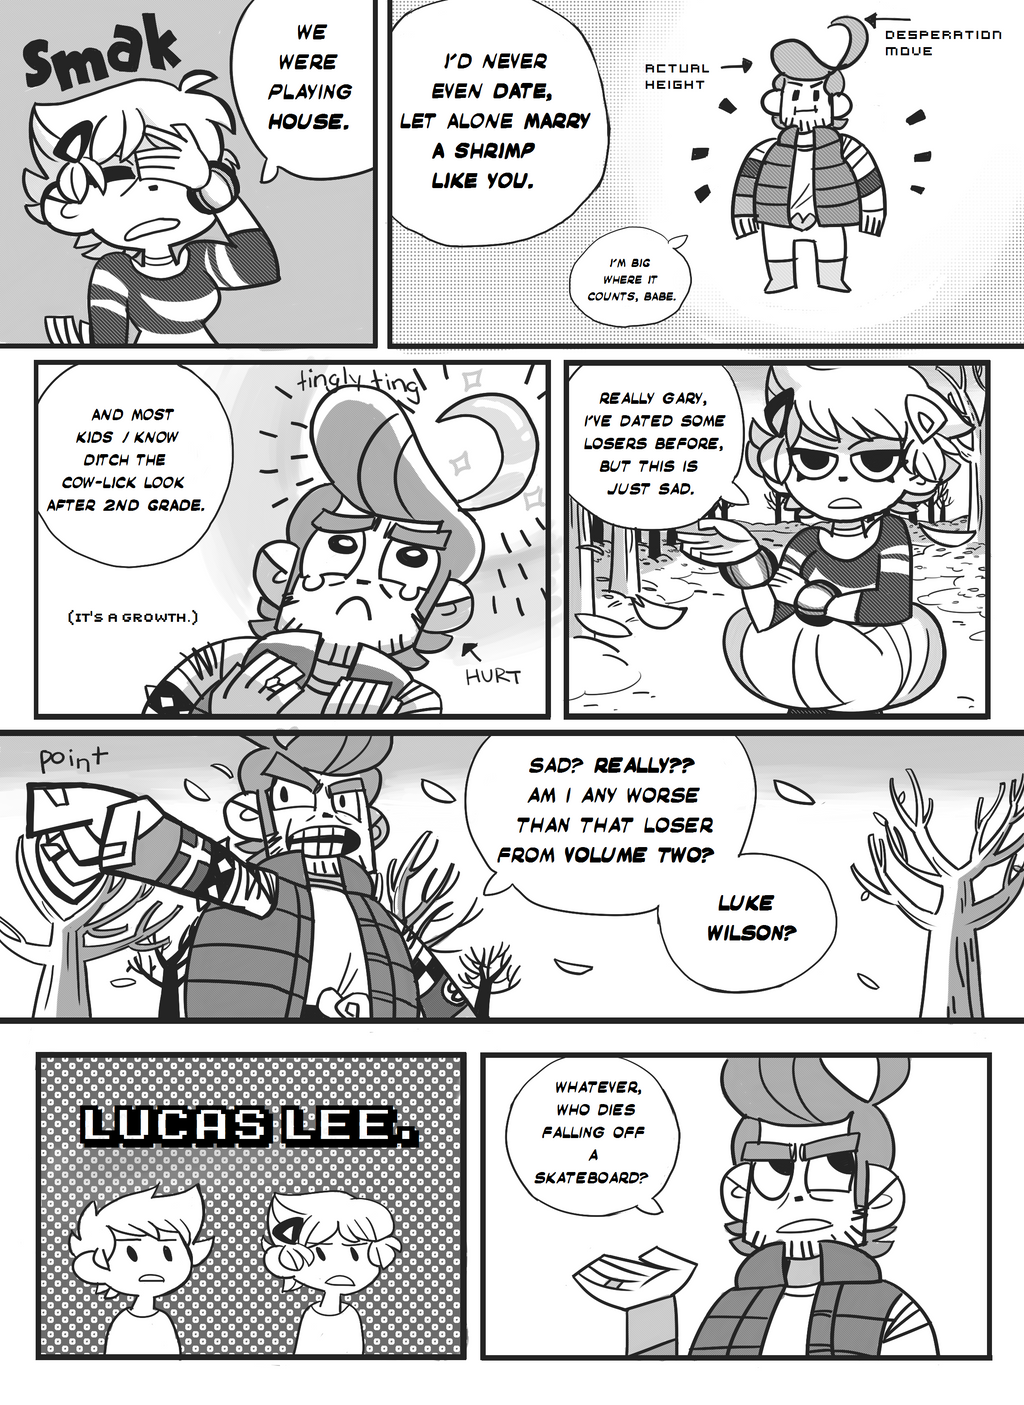 WORST FAN-FICTION PG. 5 by Hedrew